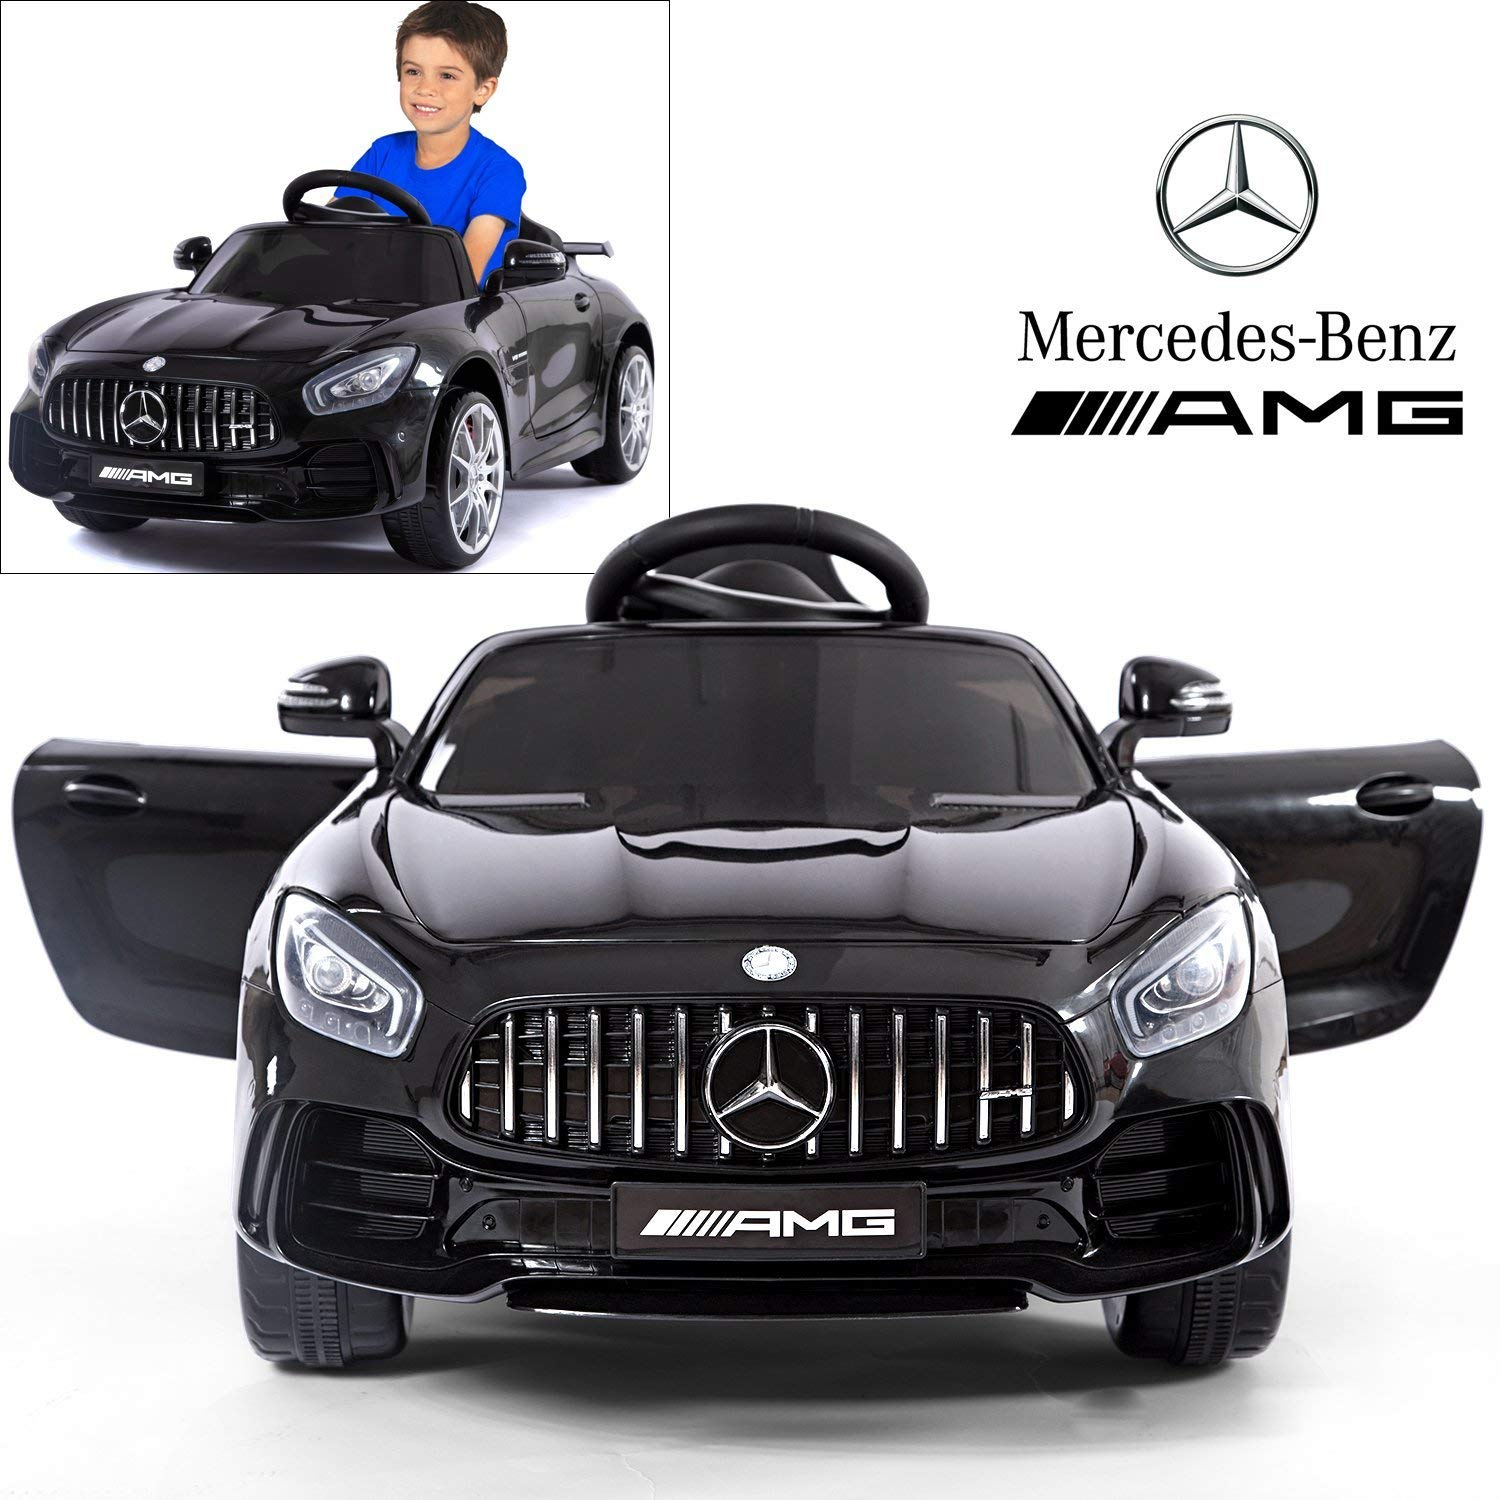 Mercedes Benz AMG GTR Electric Ride On Car with Remote Control for Kids   12V Power Battery Official Licensed Kid Car to Drive with 2.4G Radio Parental Control Opening Doors Black